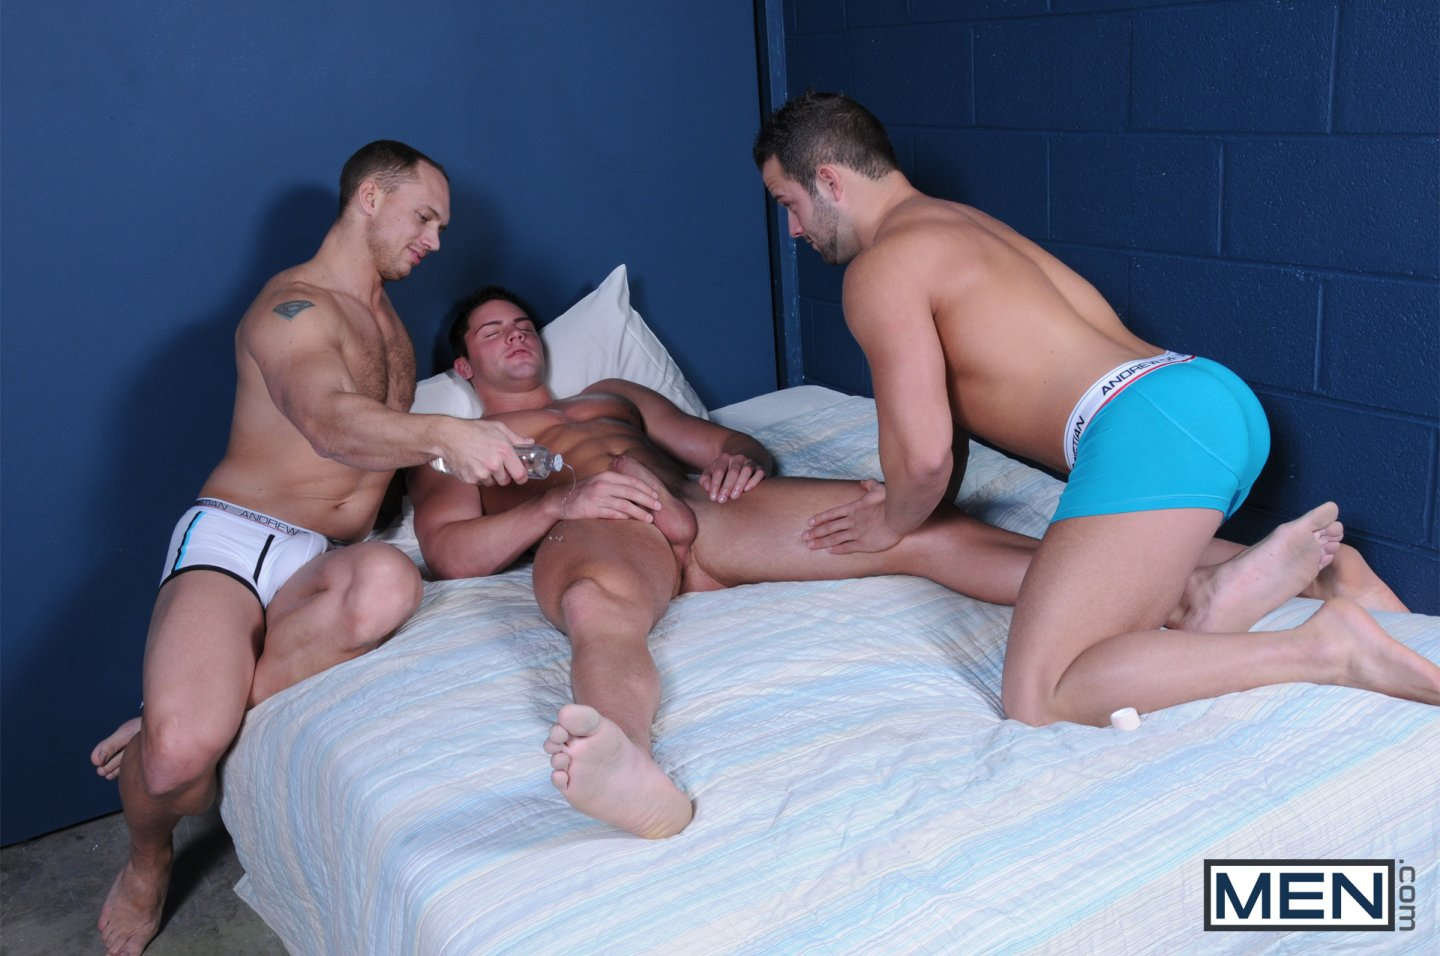 Gay orgy moaning and screaming as his butt 10